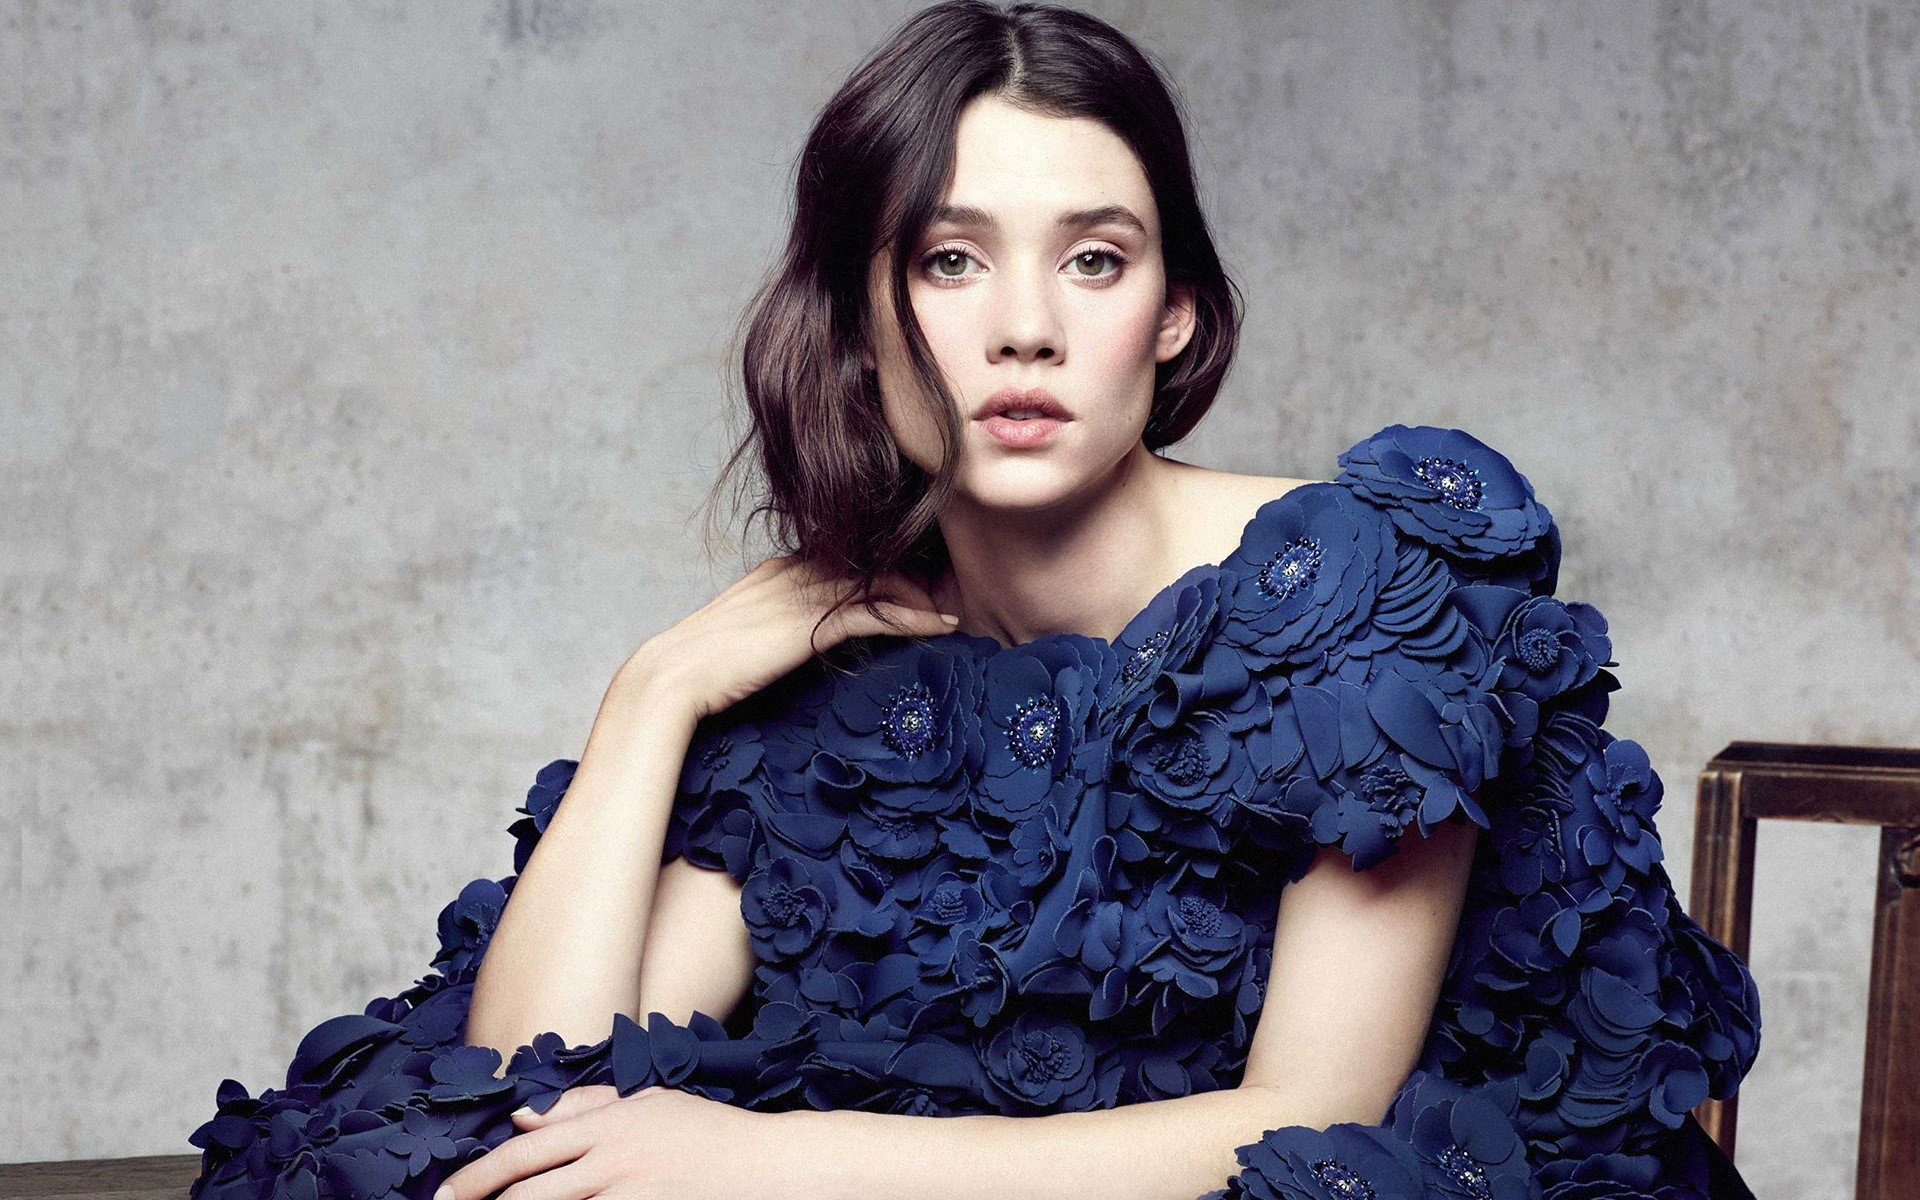 Wallpaper Actress Astrid Berges Frisbey